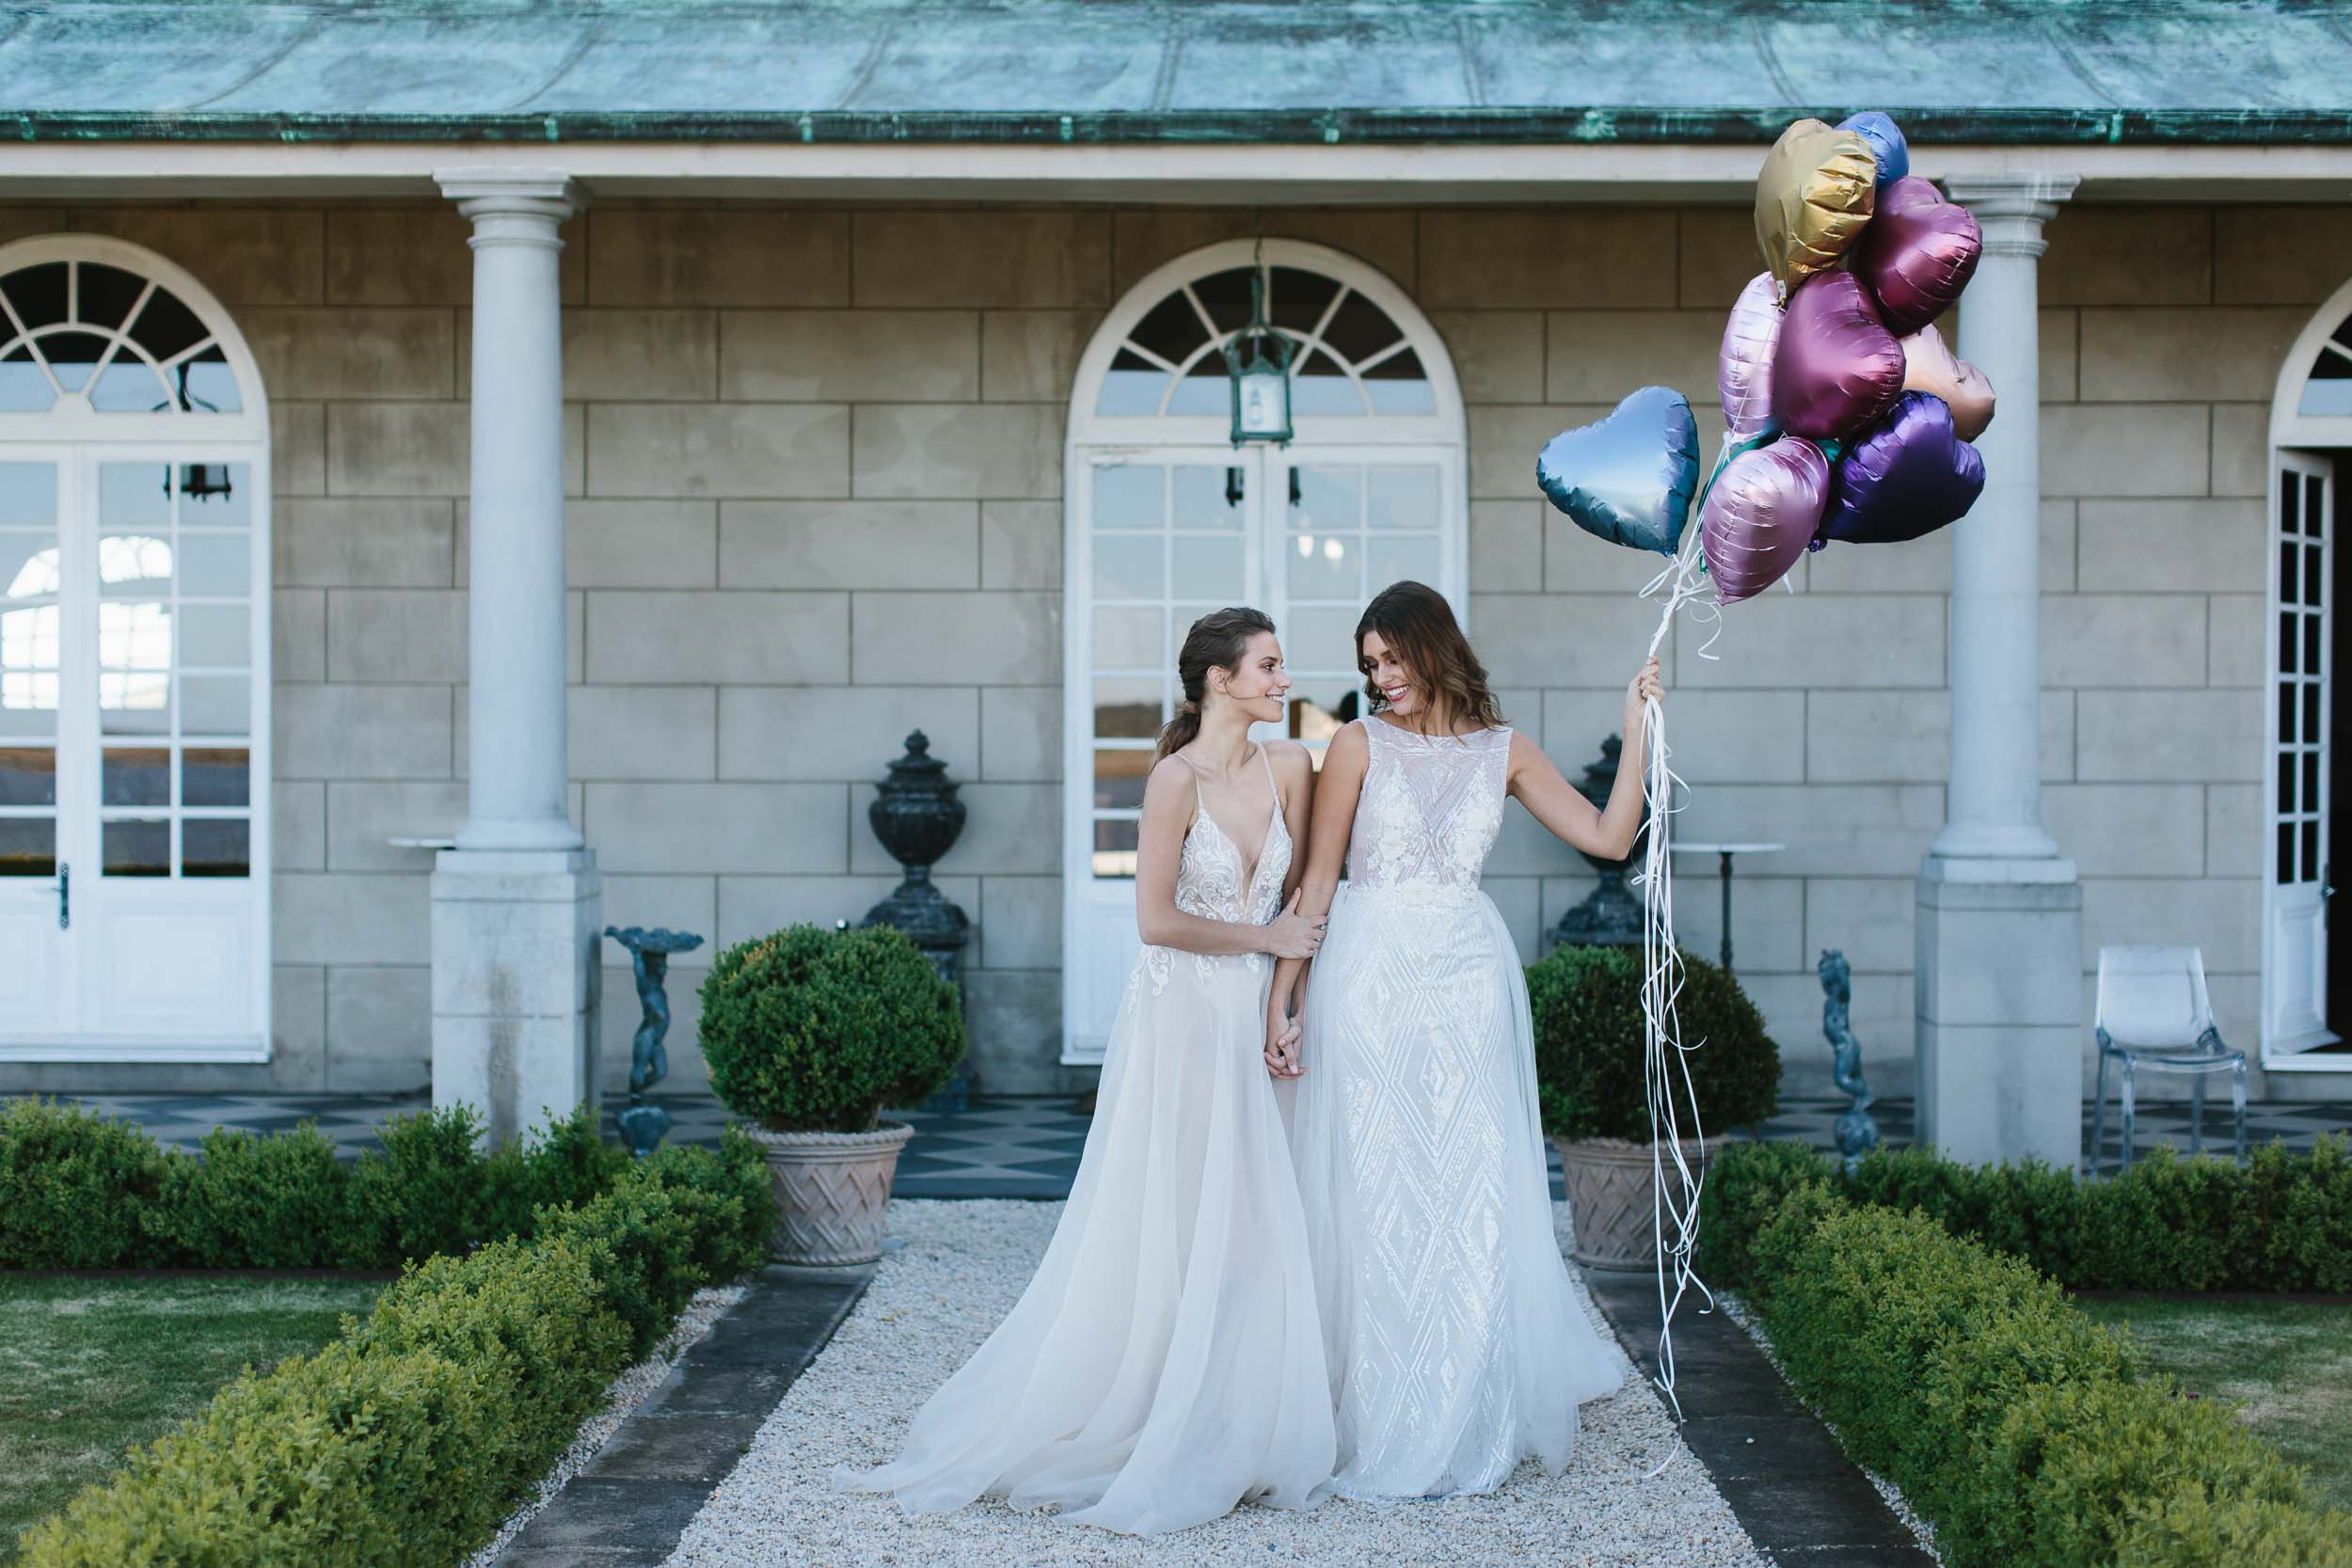 Same Sex Couple Photo with Balloons | Wedding Photography by Kas Richards